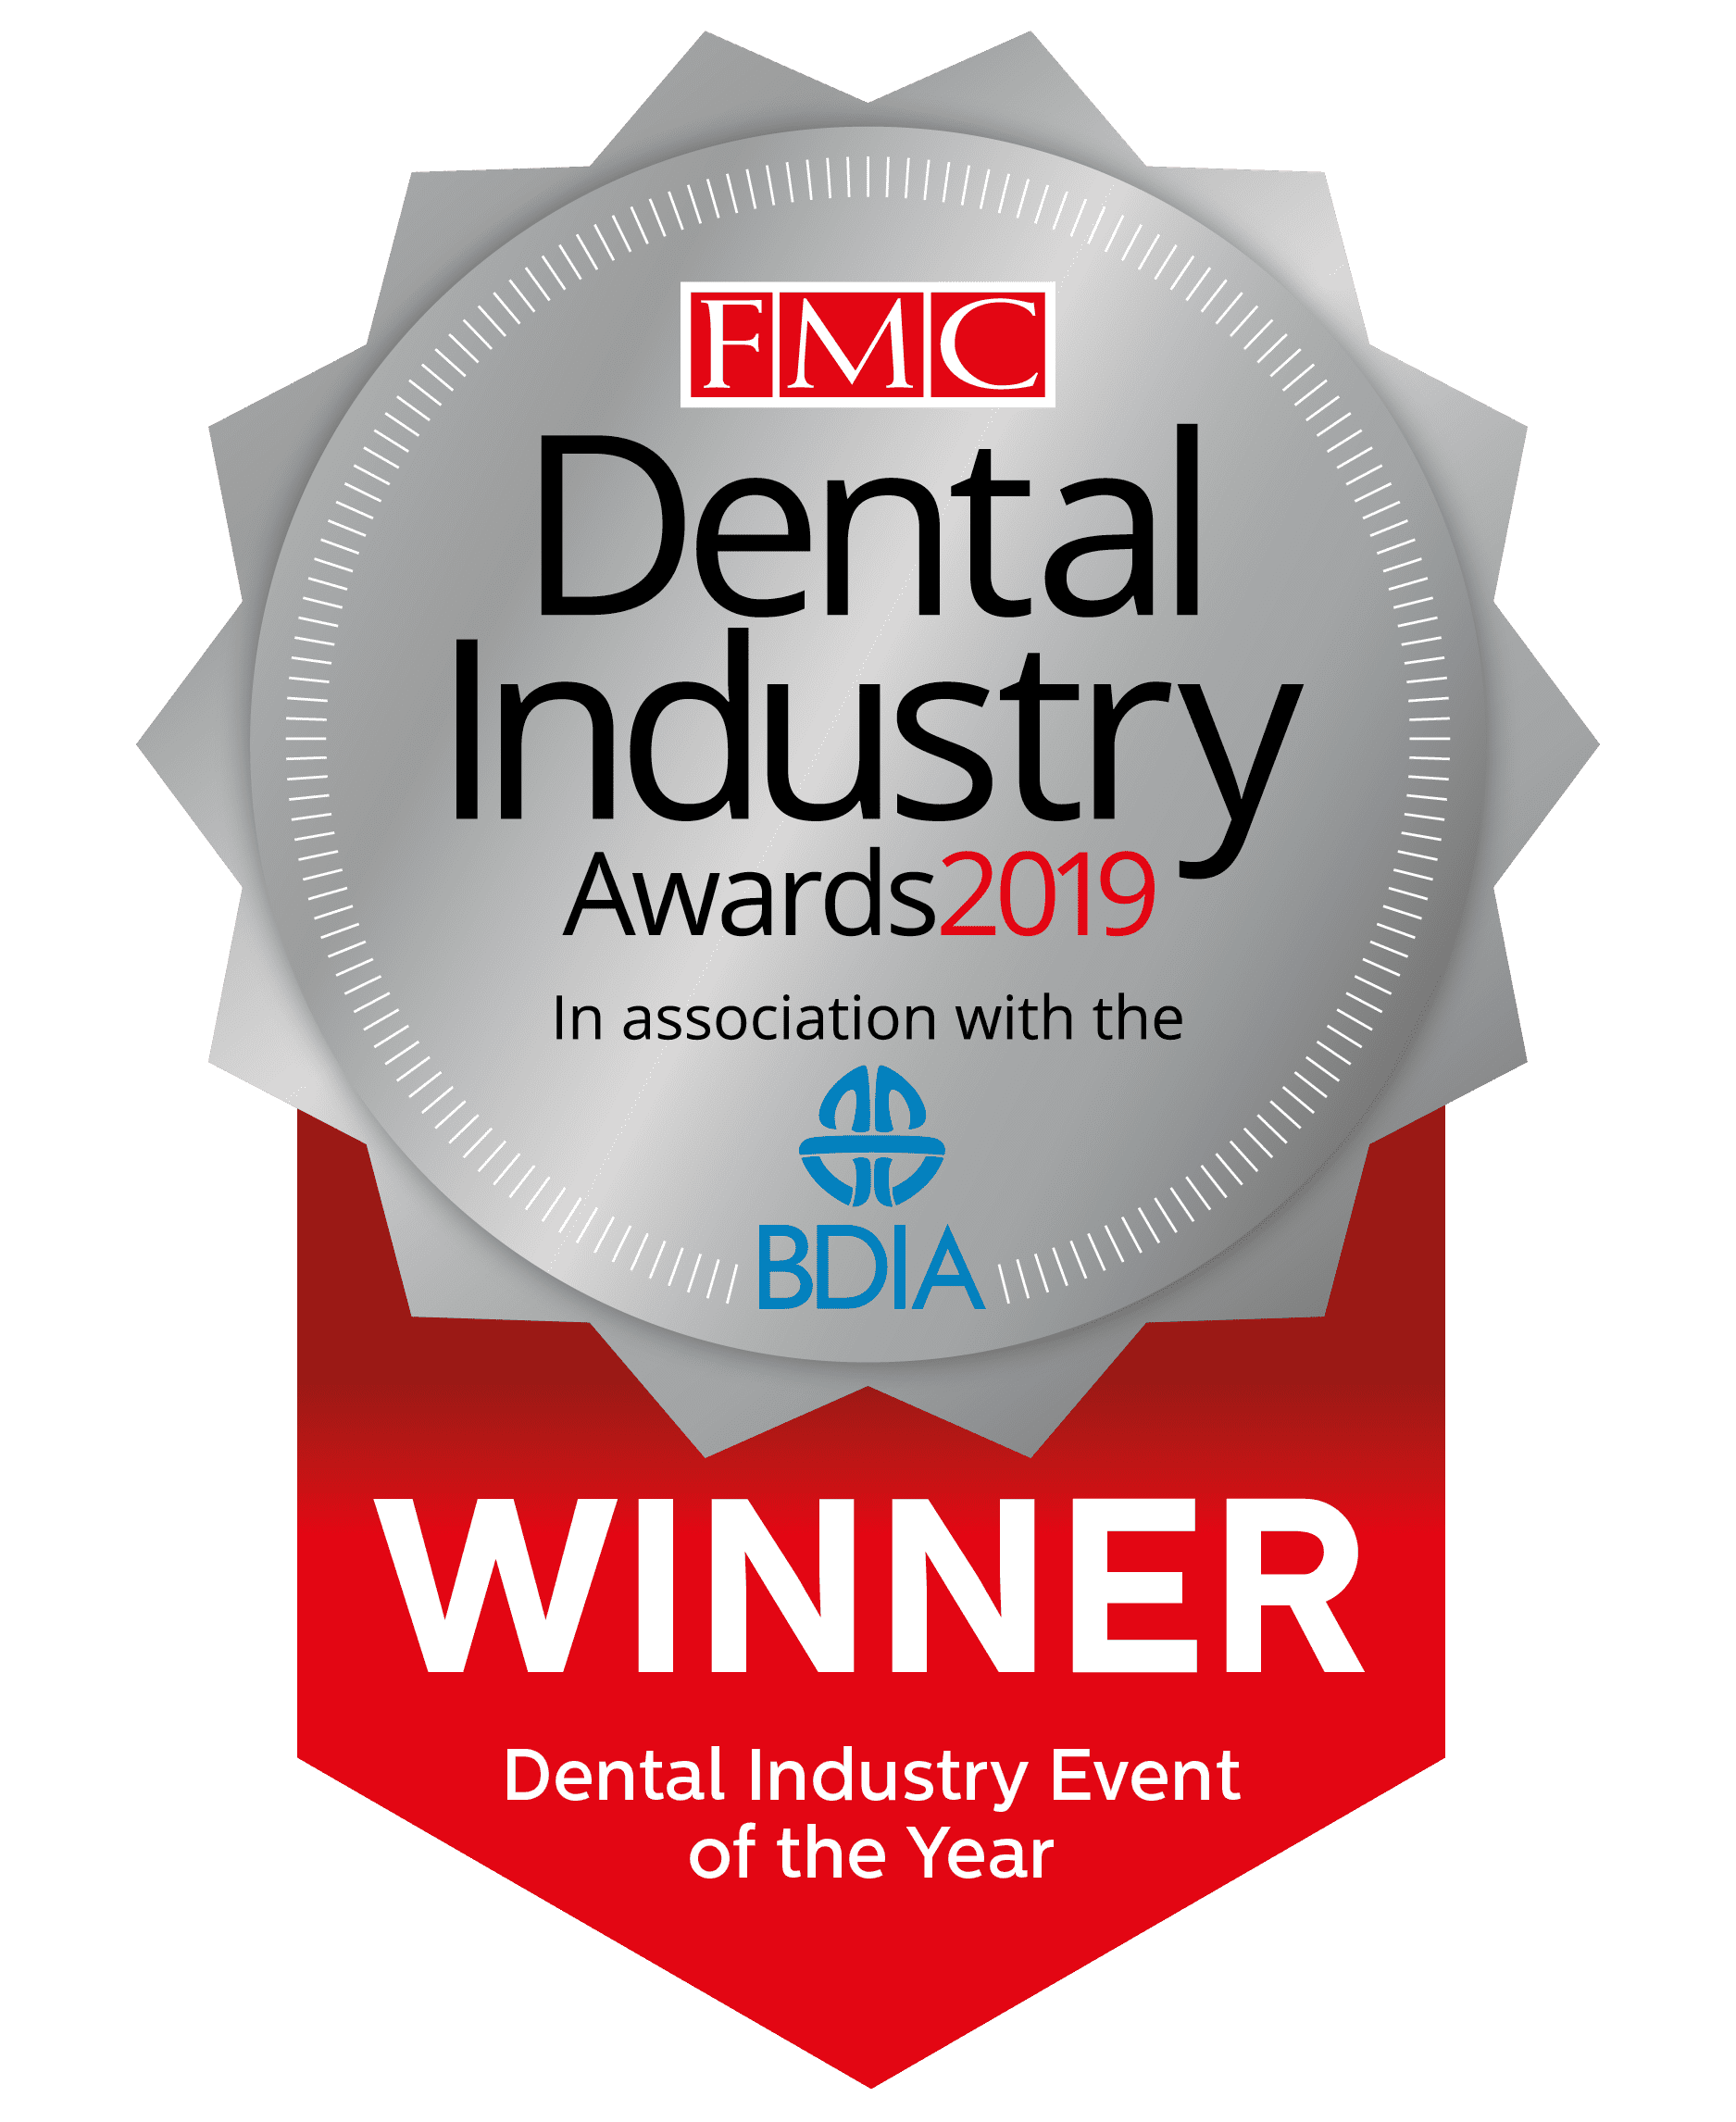 Dental Industry Awards 2019-Winner-Dental industry event of the year